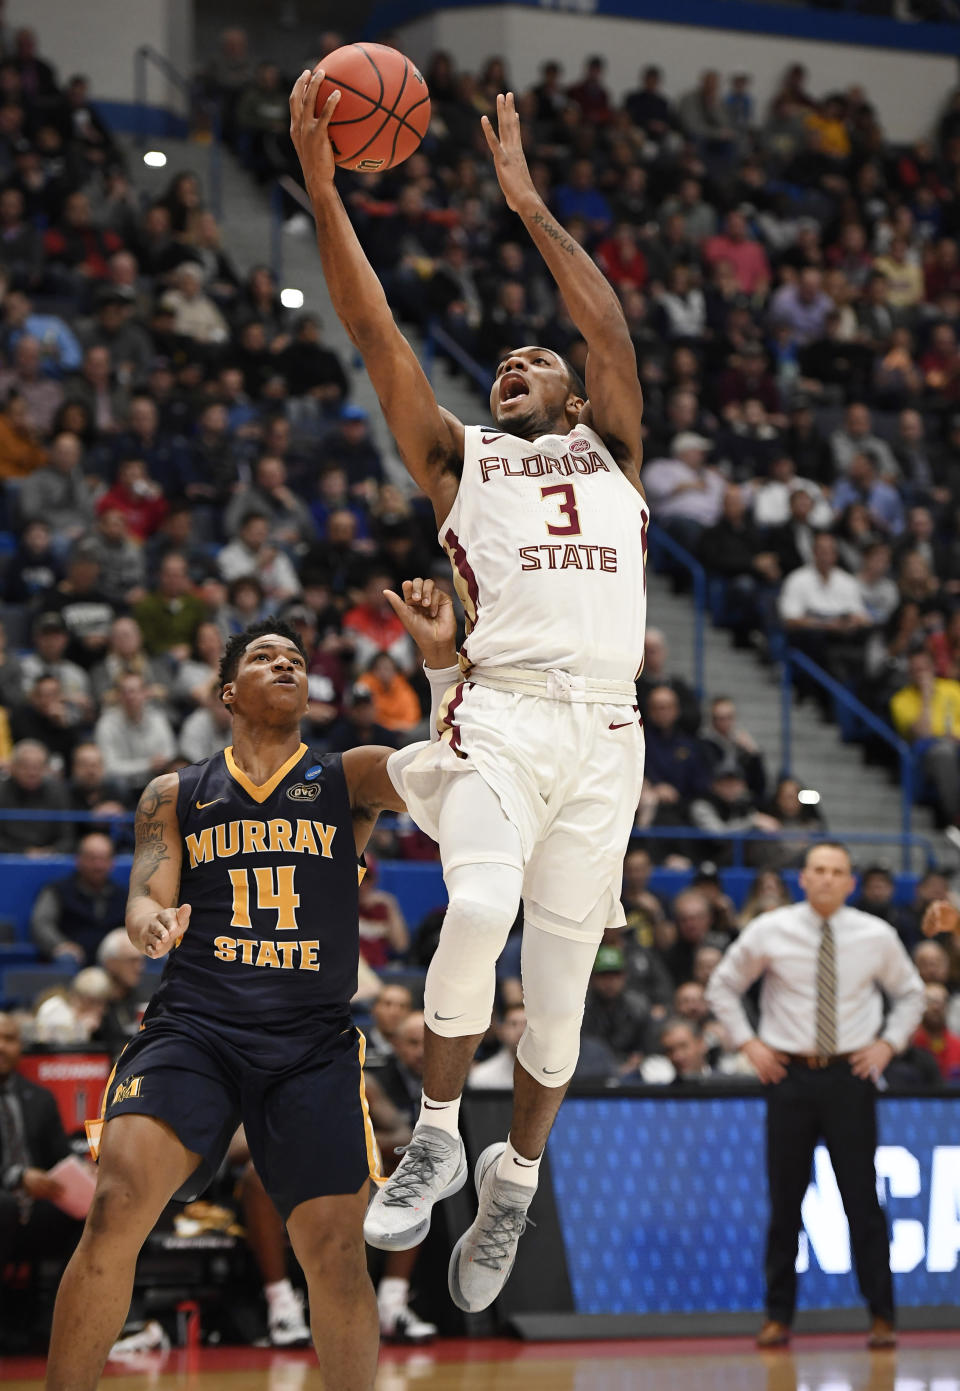 Florida State's Trent Forrest (3) shoots a basket over Murray State's Jaiveon Eaves (14) during the first half of a second round men's college basketball game in the NCAA tournament, Saturday, March 23, 2019, in Hartford, Conn. (AP Photo/Jessica Hill)